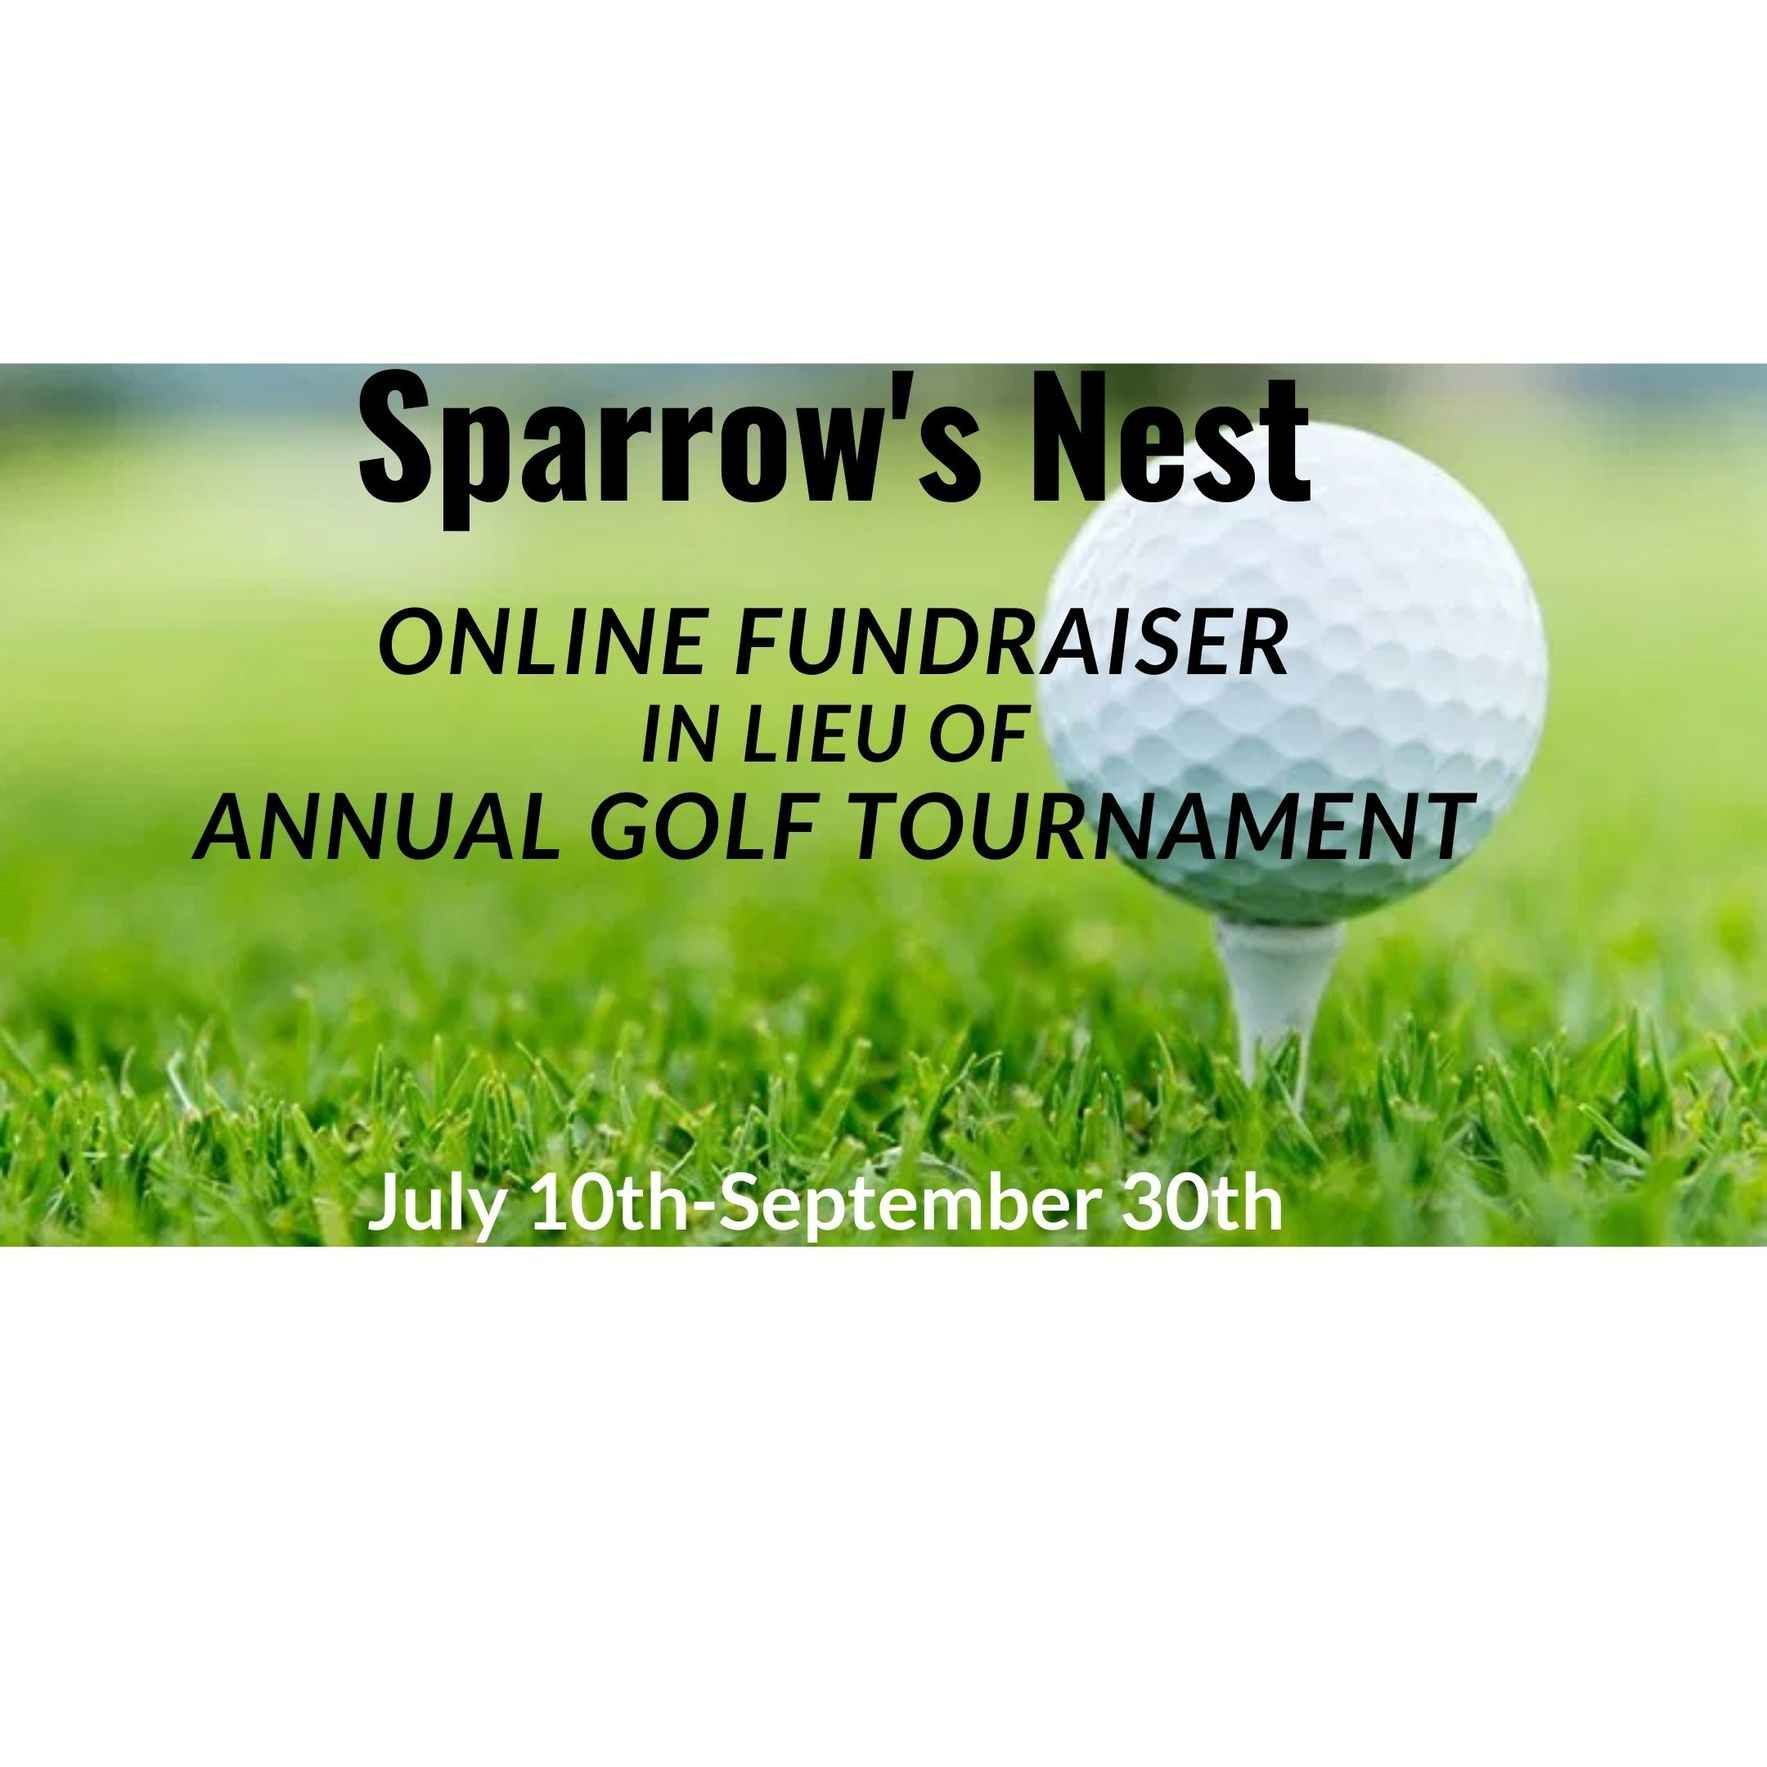 Sparrow's Nest ONLINE FUNDRAISER IN LIEU OF ANNUAL GOLF TOURNAMENT image